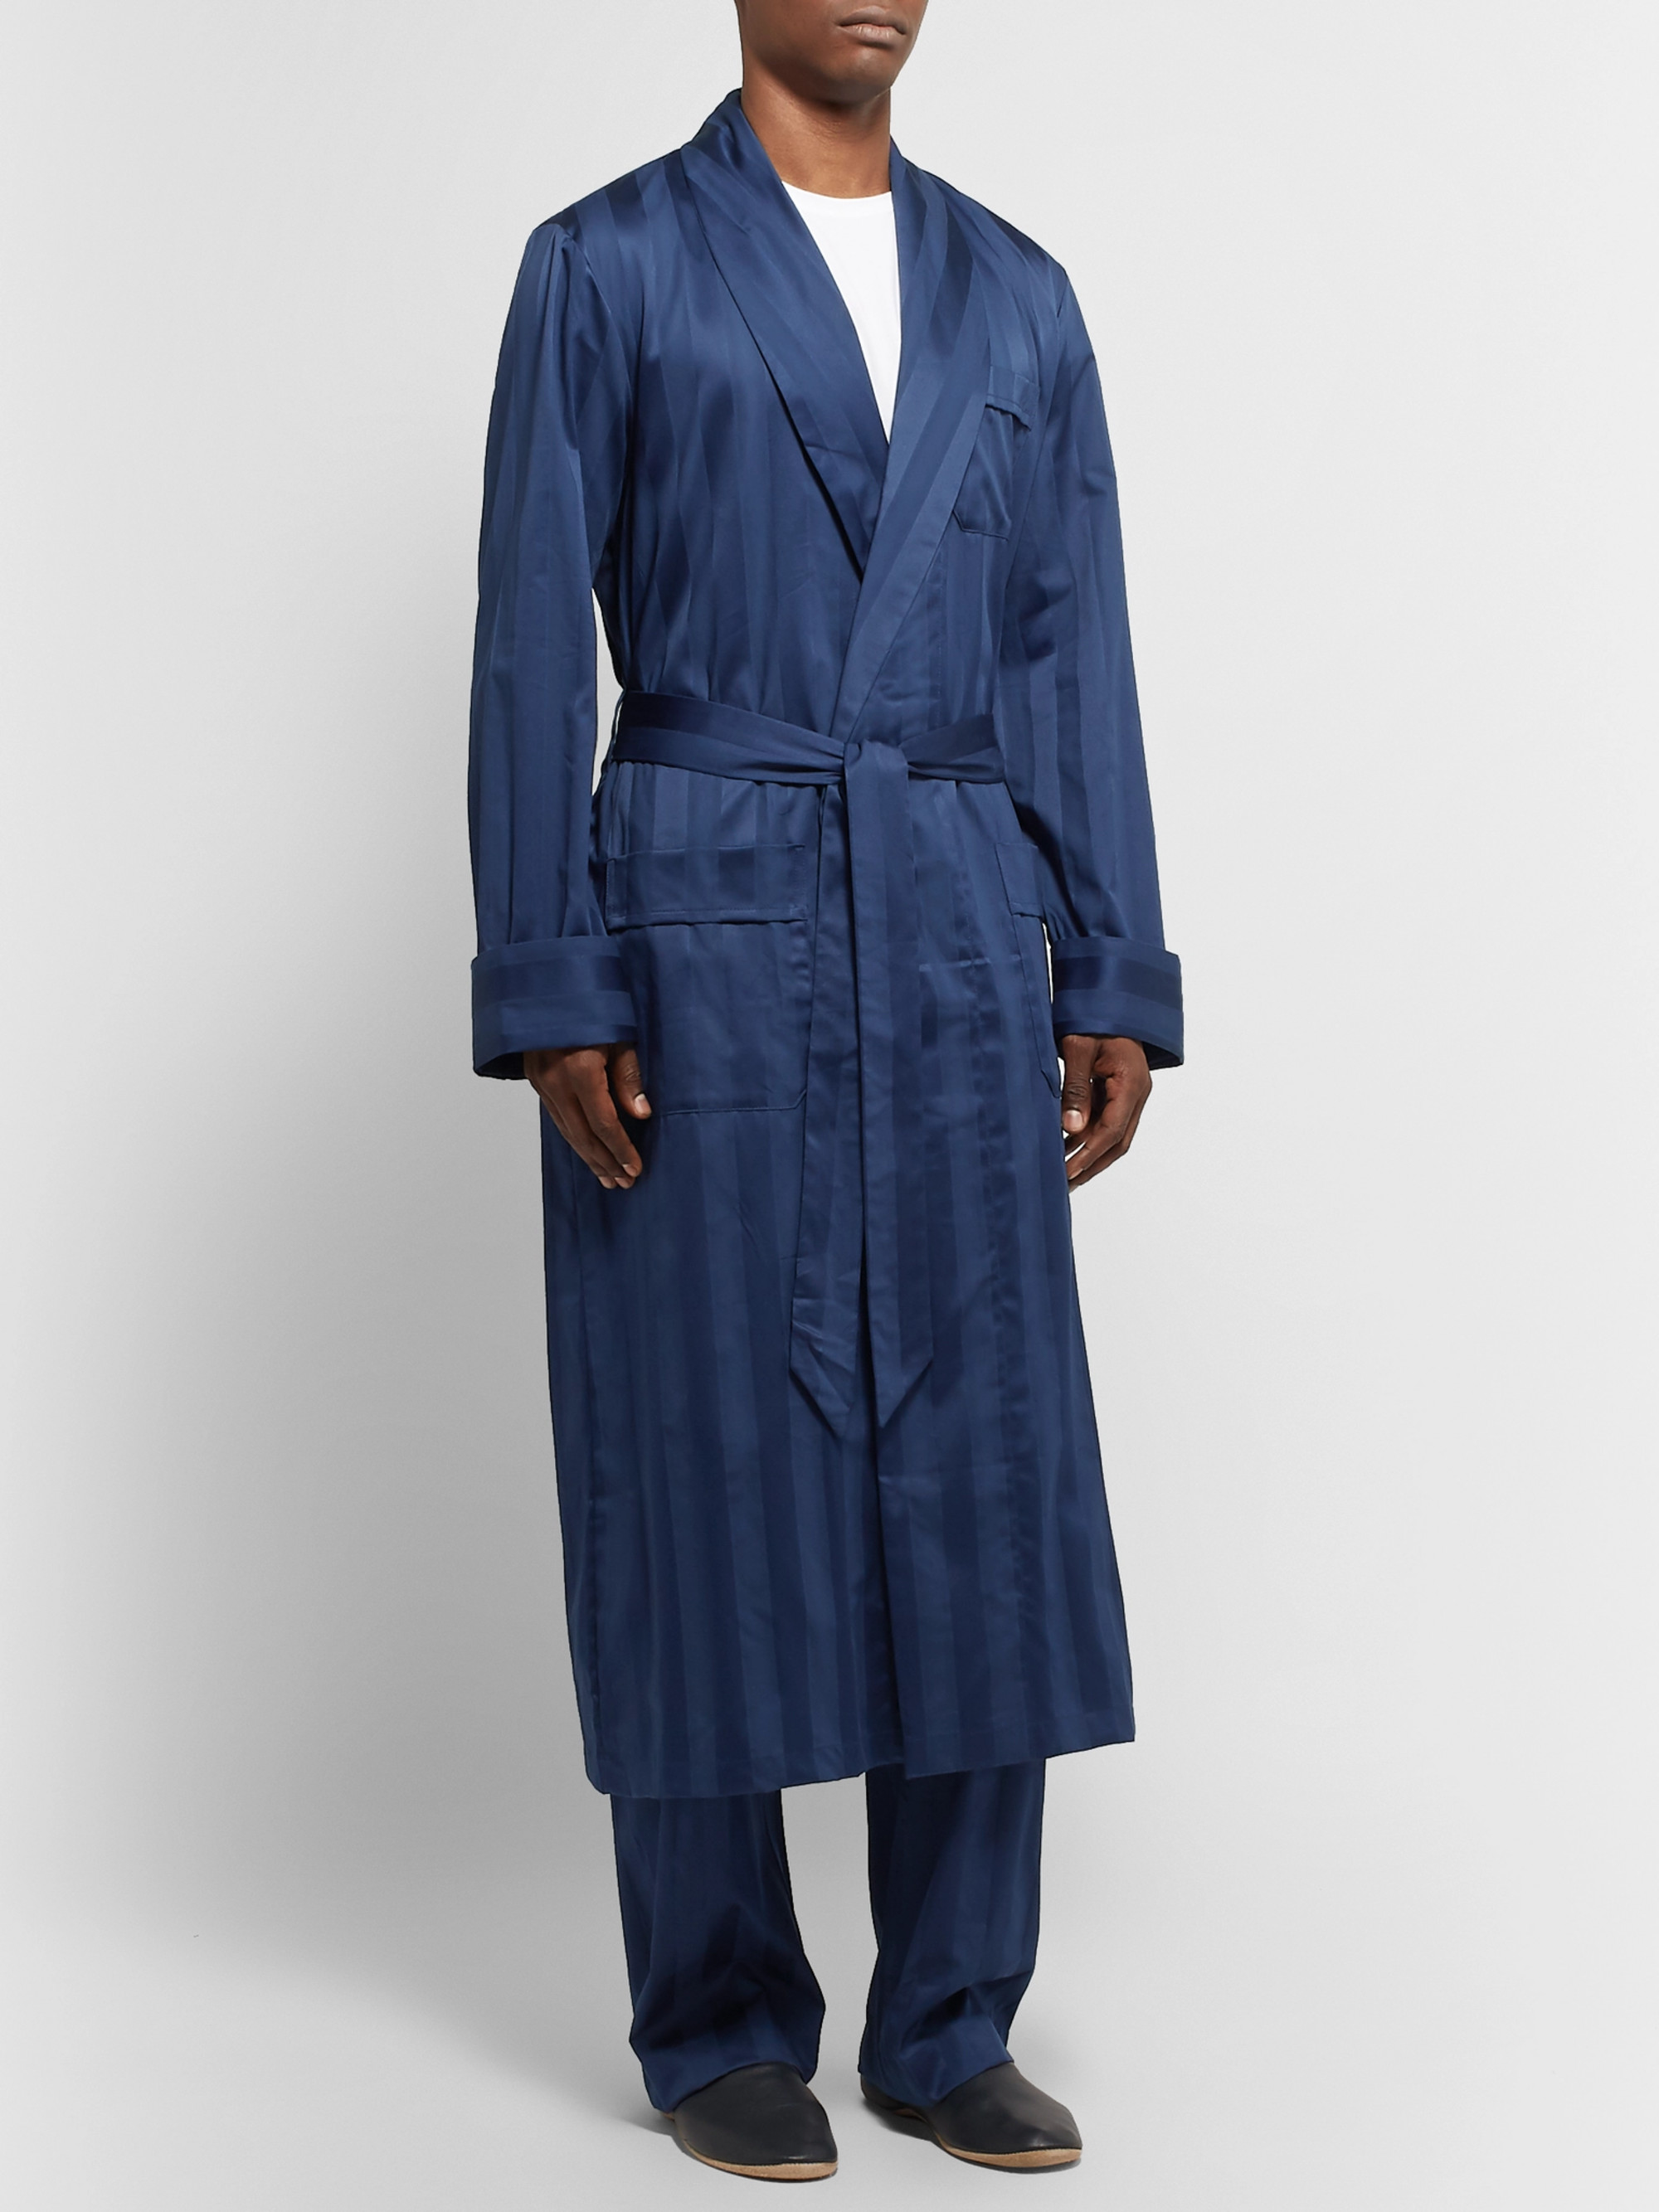 Derek Rose Lingfield Satin-Striped Cotton Robe